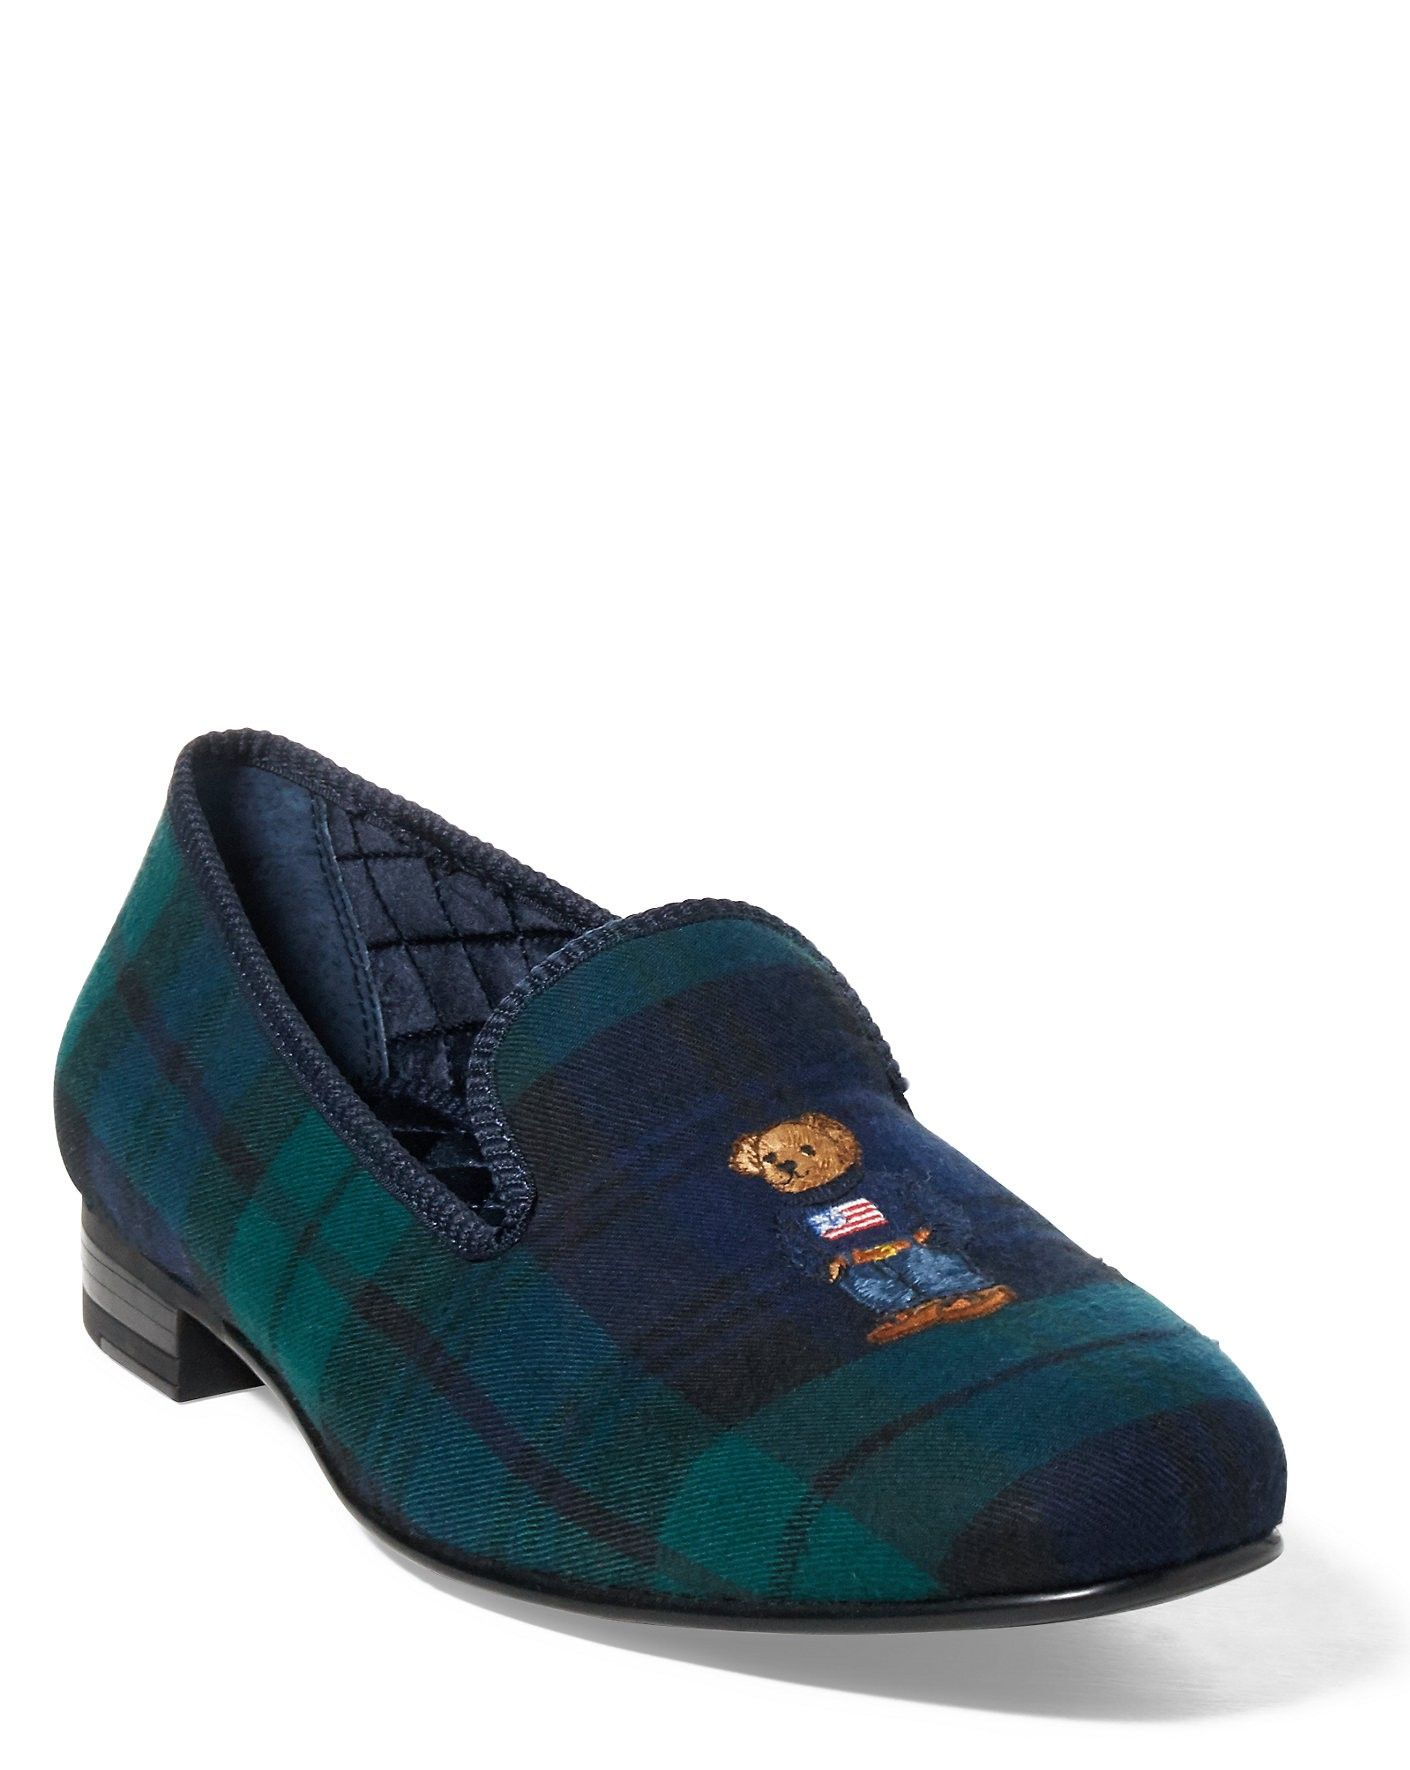 6b1f899789b RALPH LAUREN Polo Ralph Lauren Willard Polo Bear Slipper.  ralphlauren   shoes